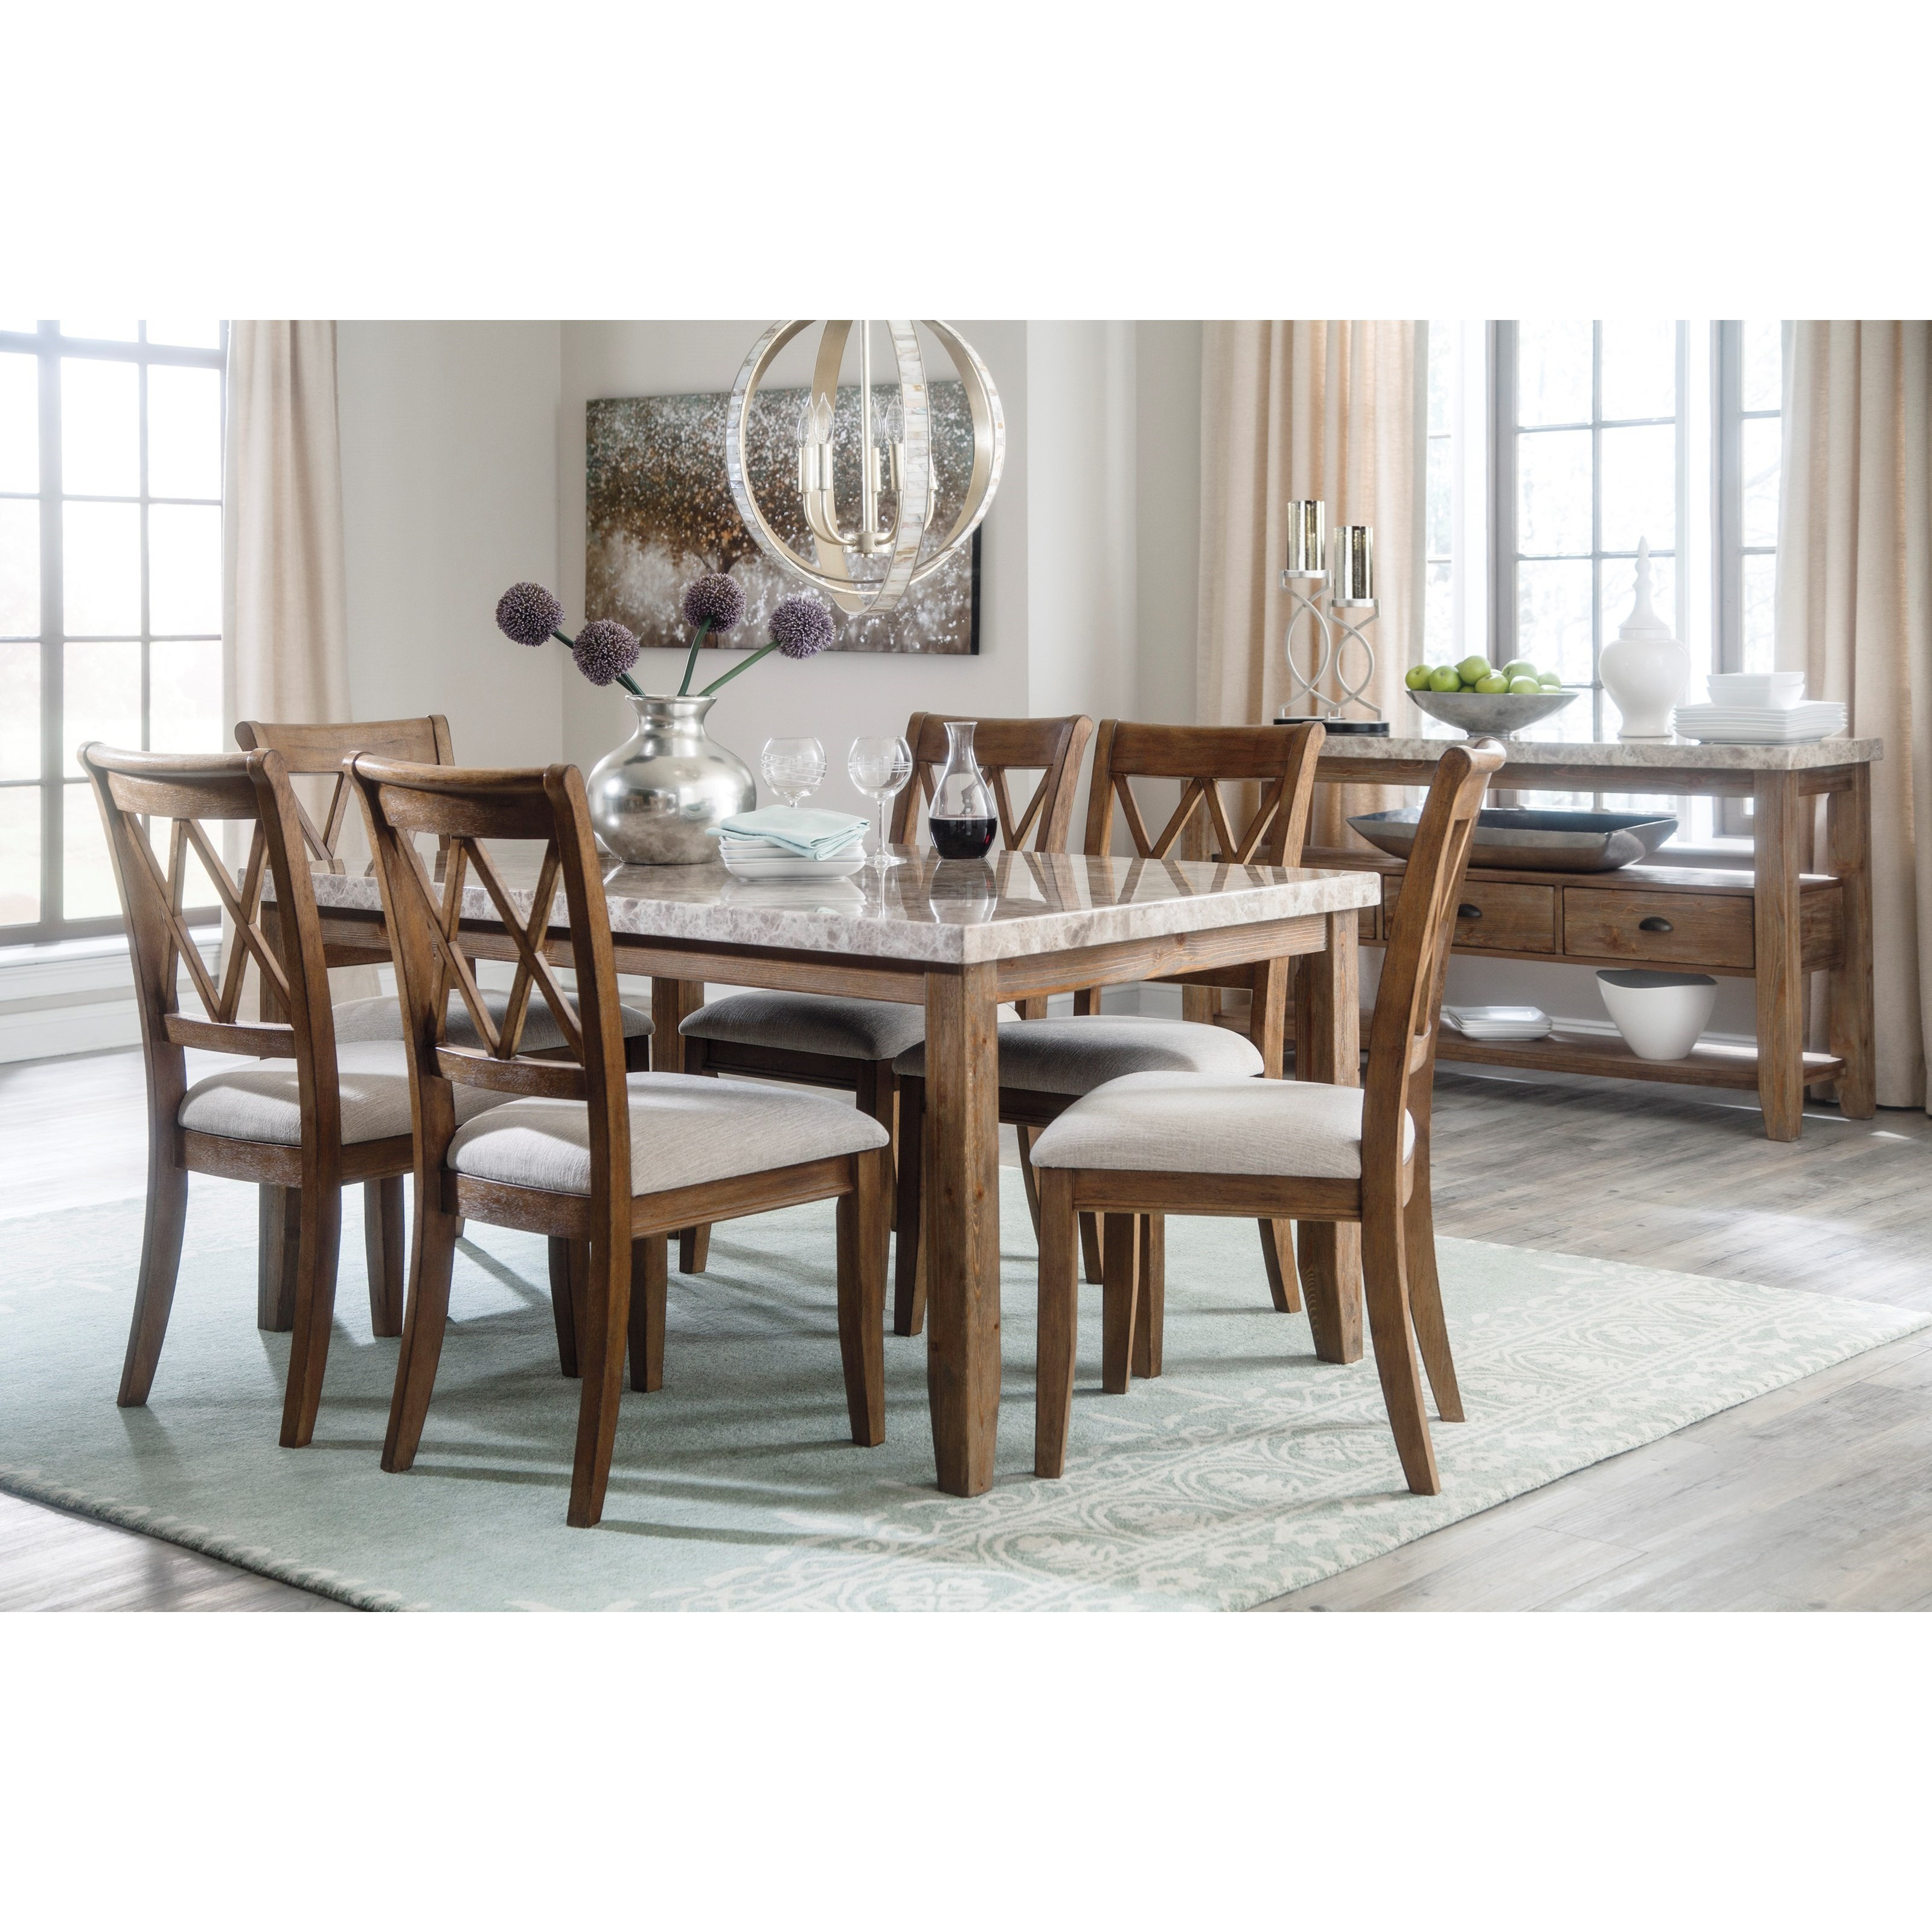 Signature Design by Ashley Narvilla Casual Dining Room Group - Item Number: D559 Dining Room Group 1